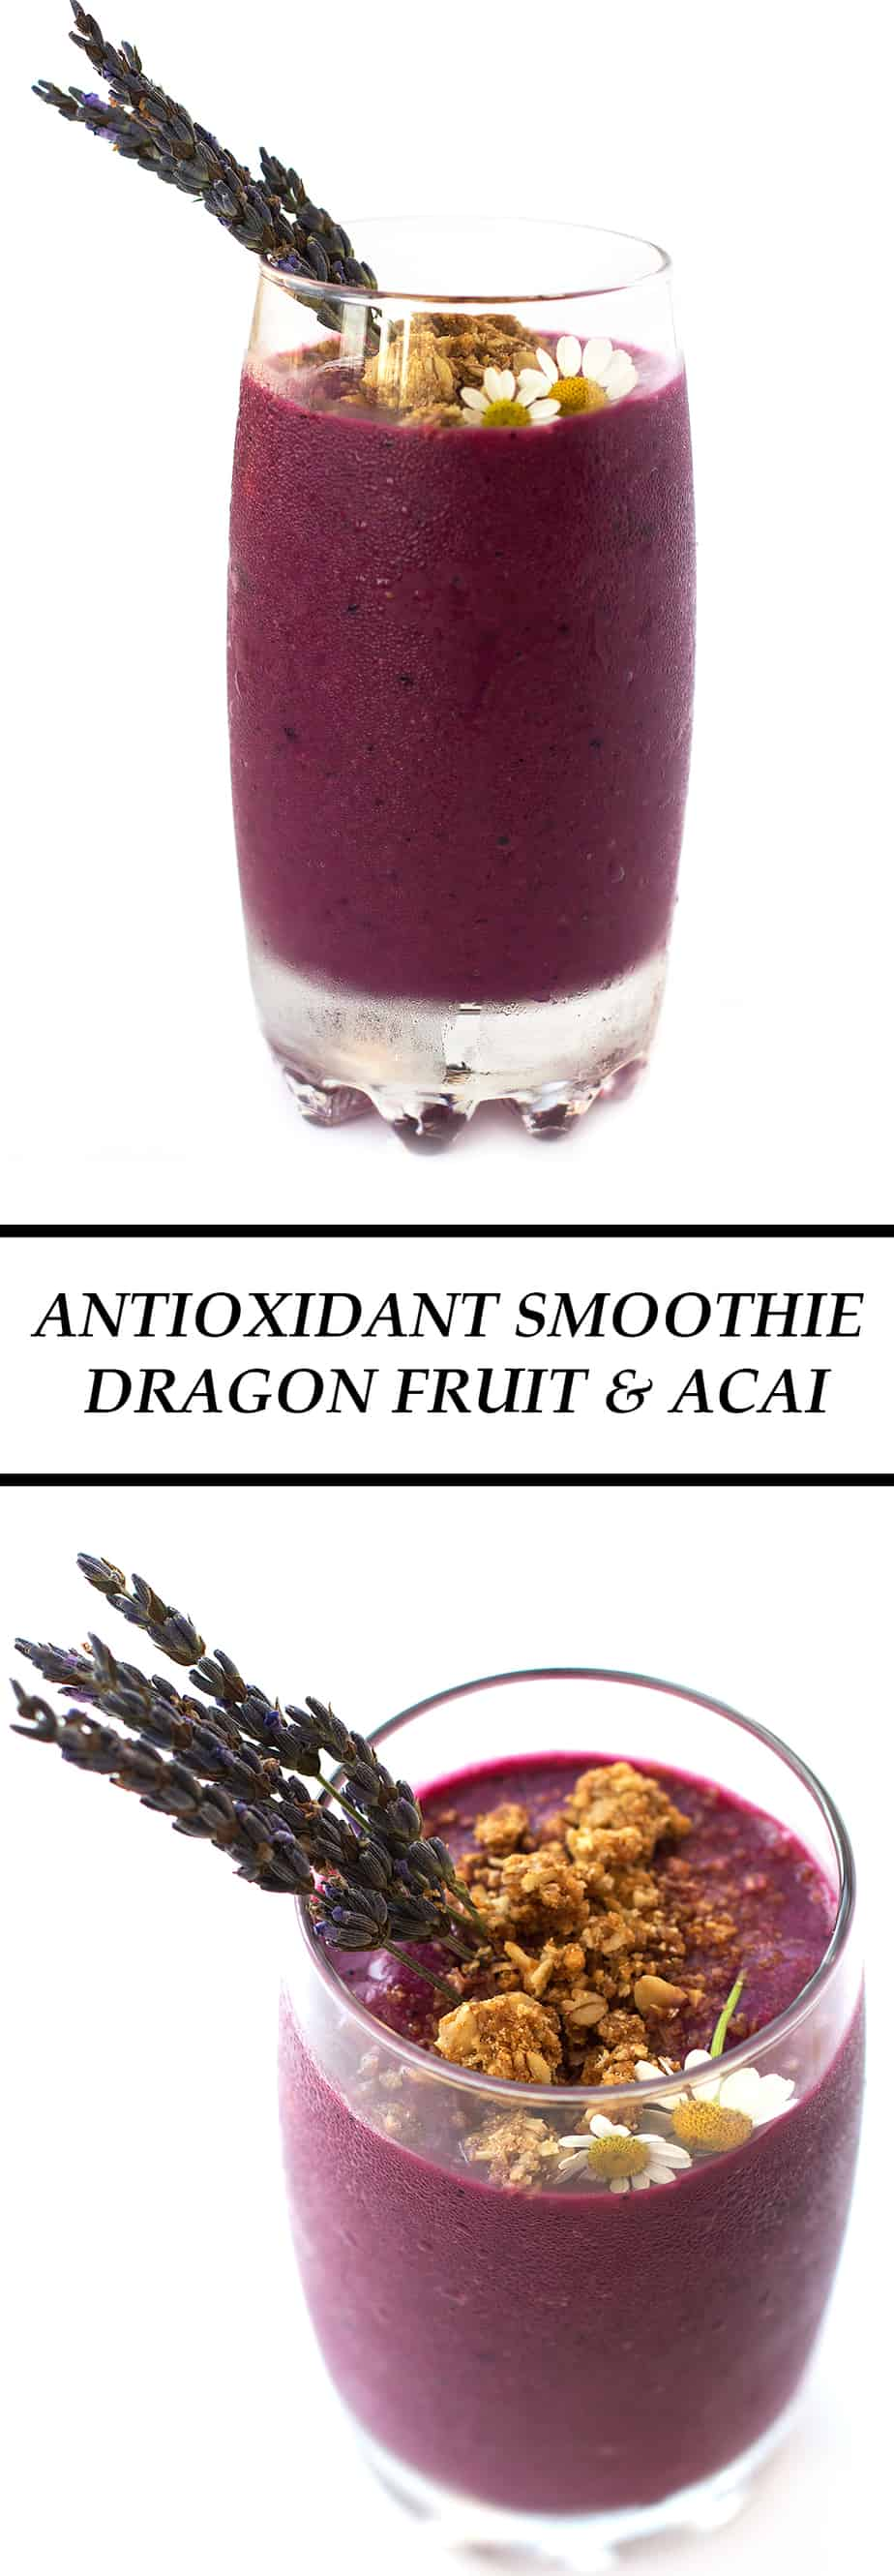 Antioxidant-smoothie-dragon-fruit-acai